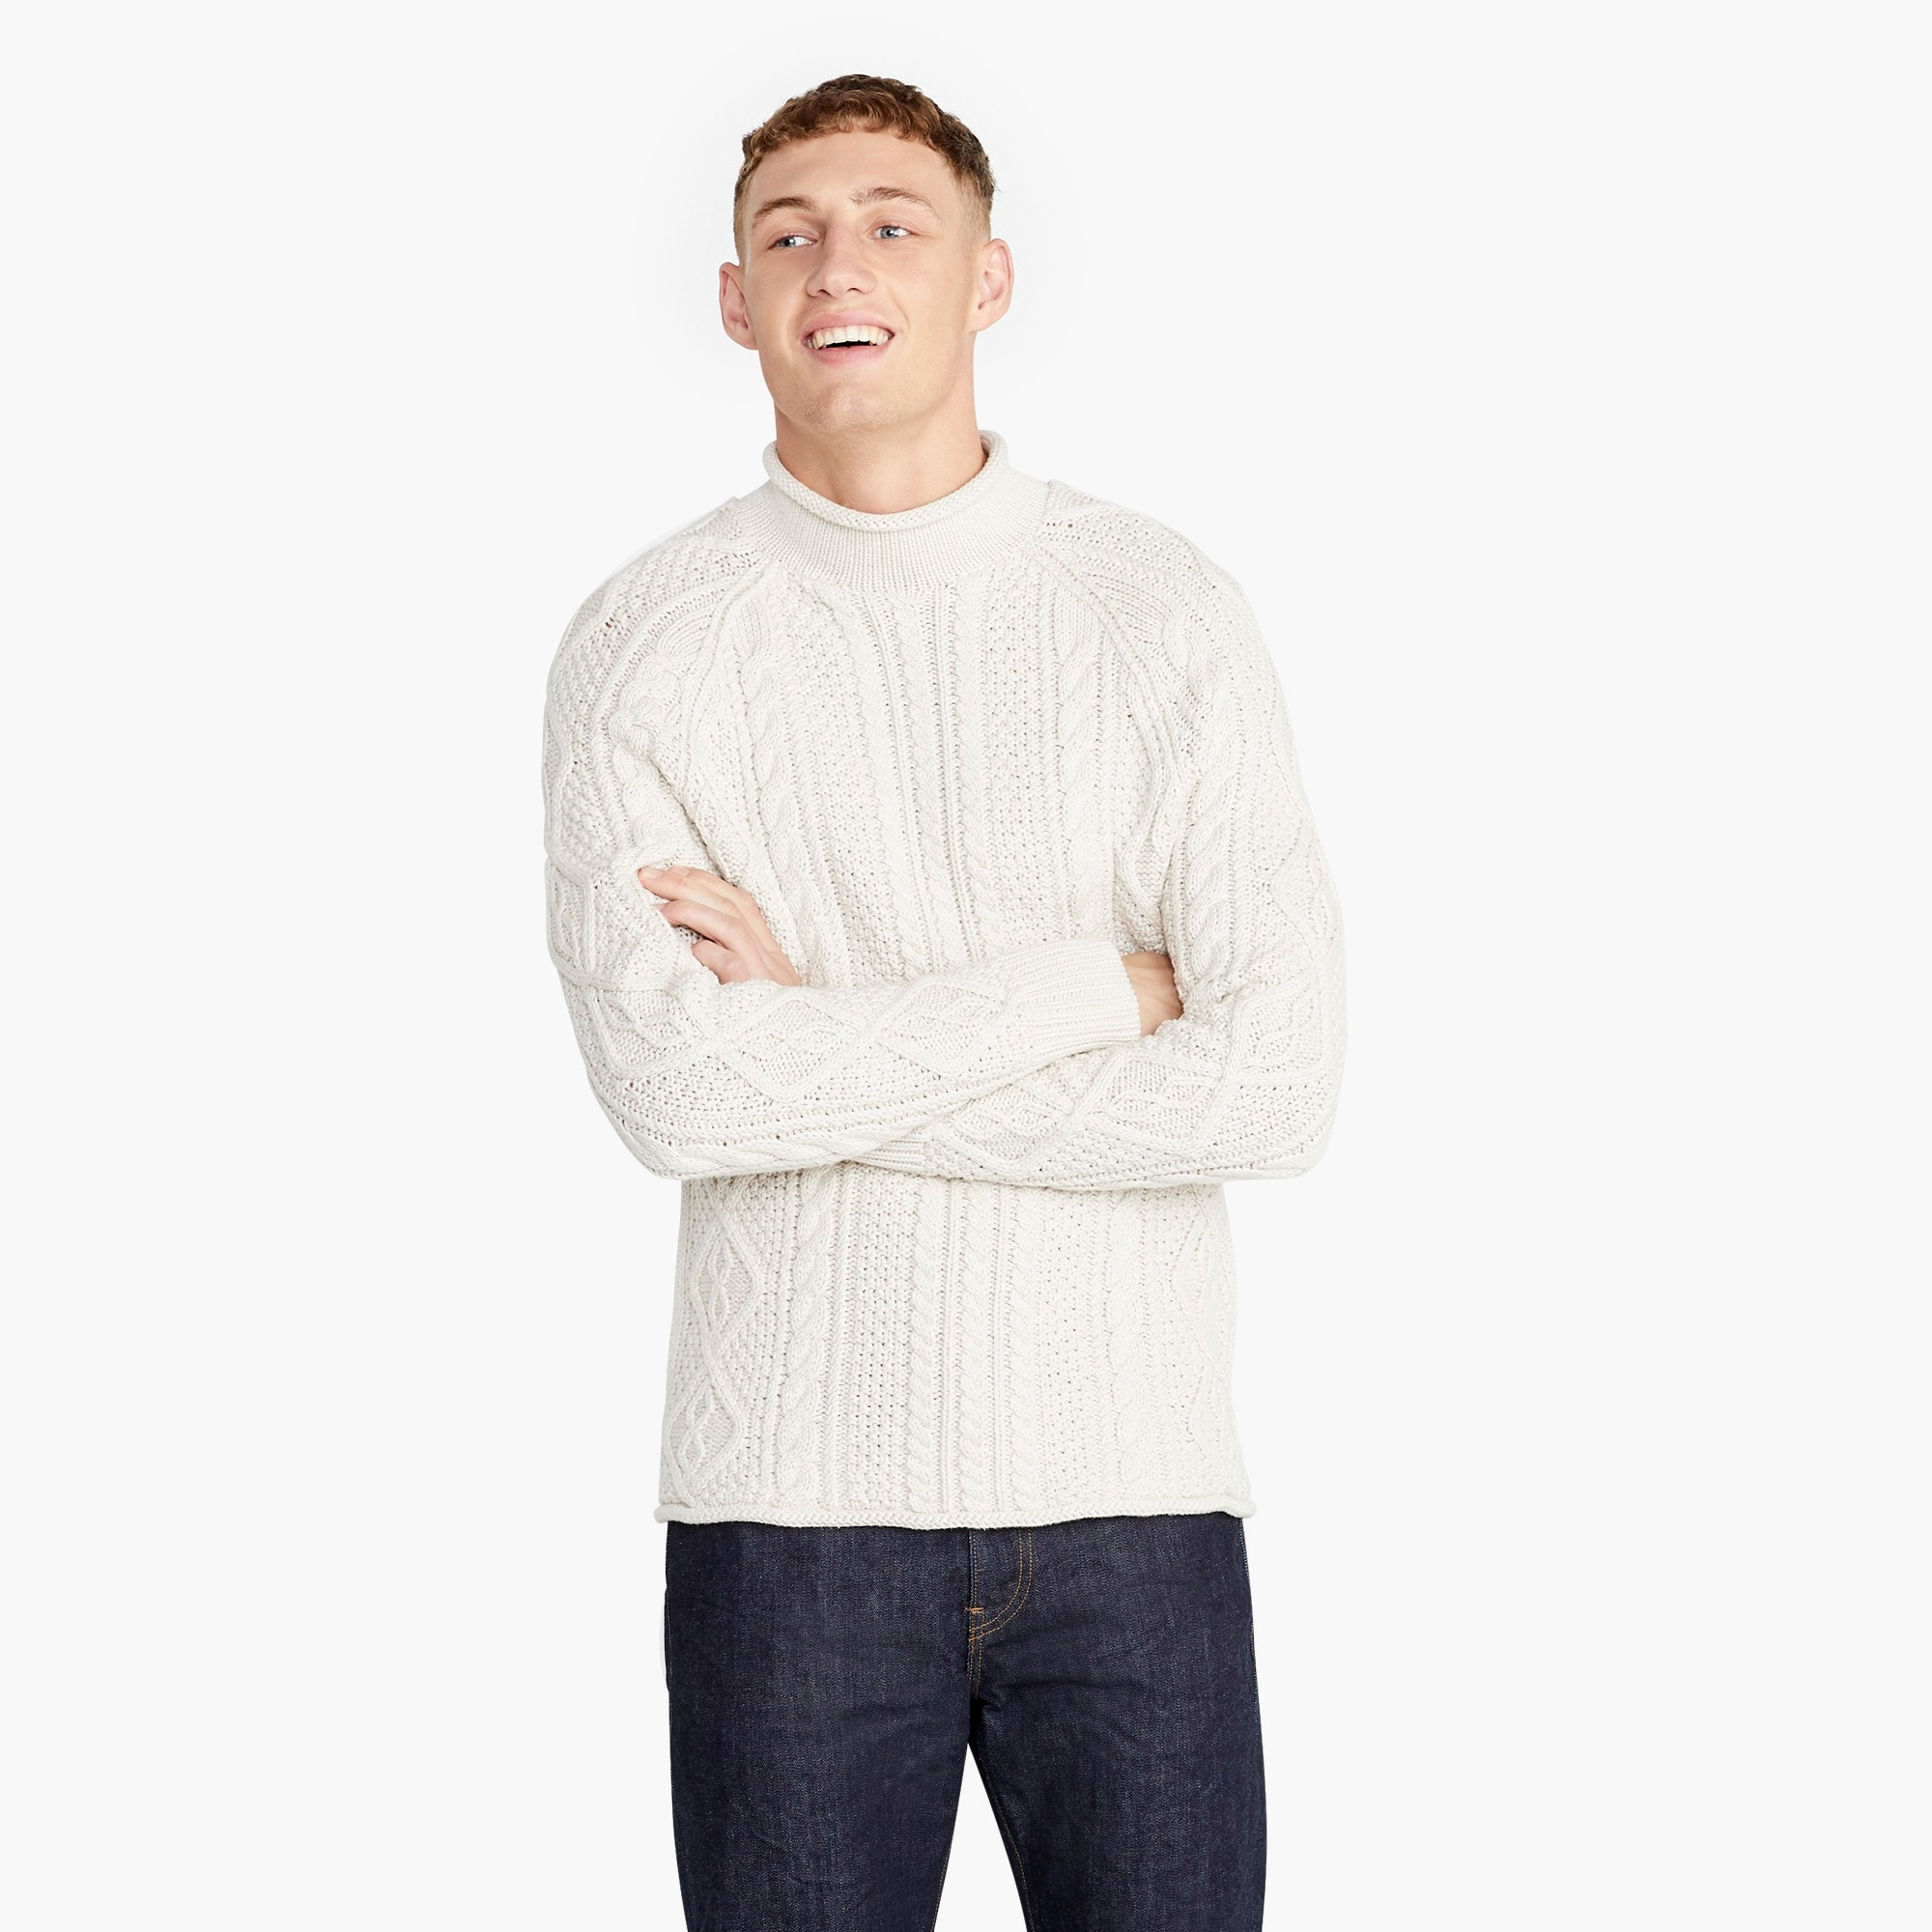 mens 1988 rollneck™ sweater in cable knit cotton